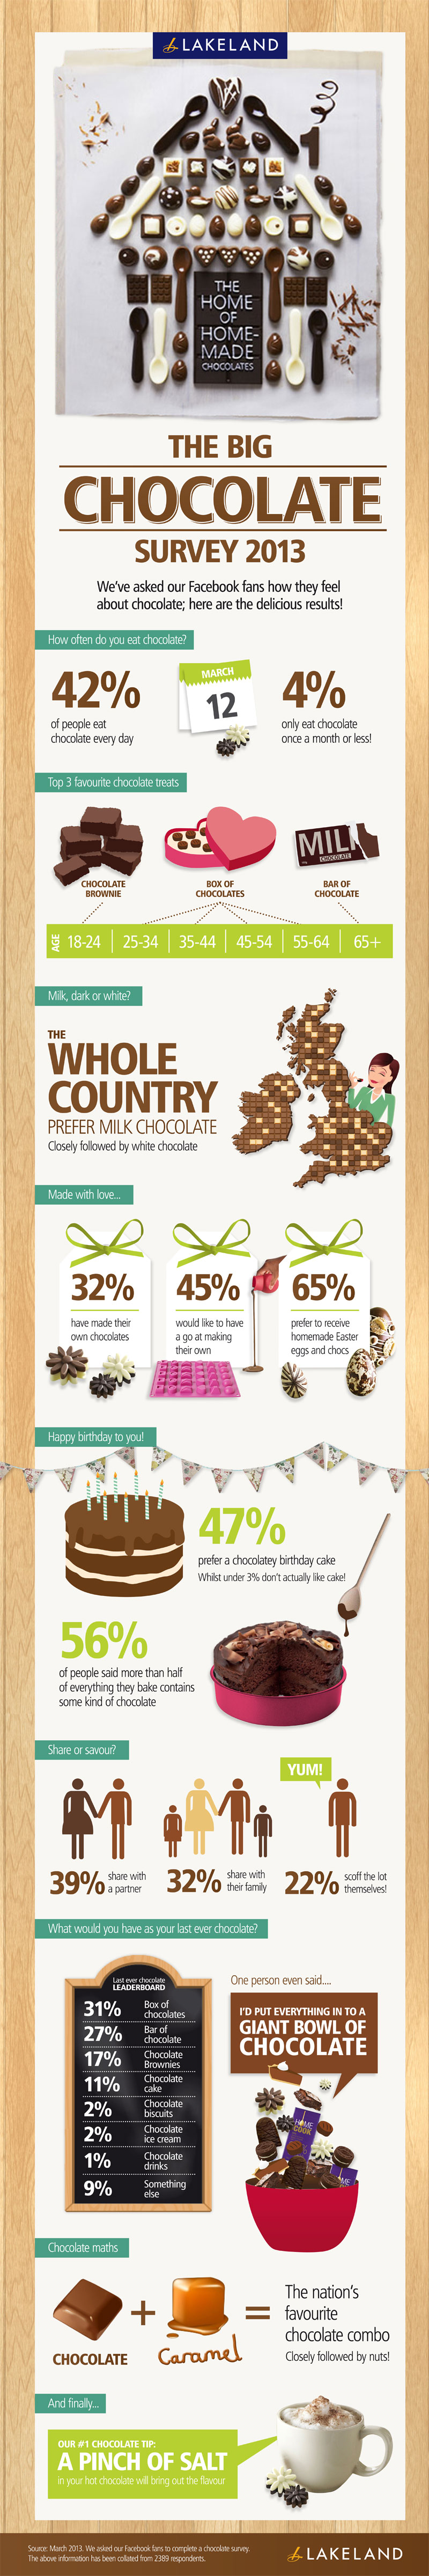 Lakeland Chocolate Infographic